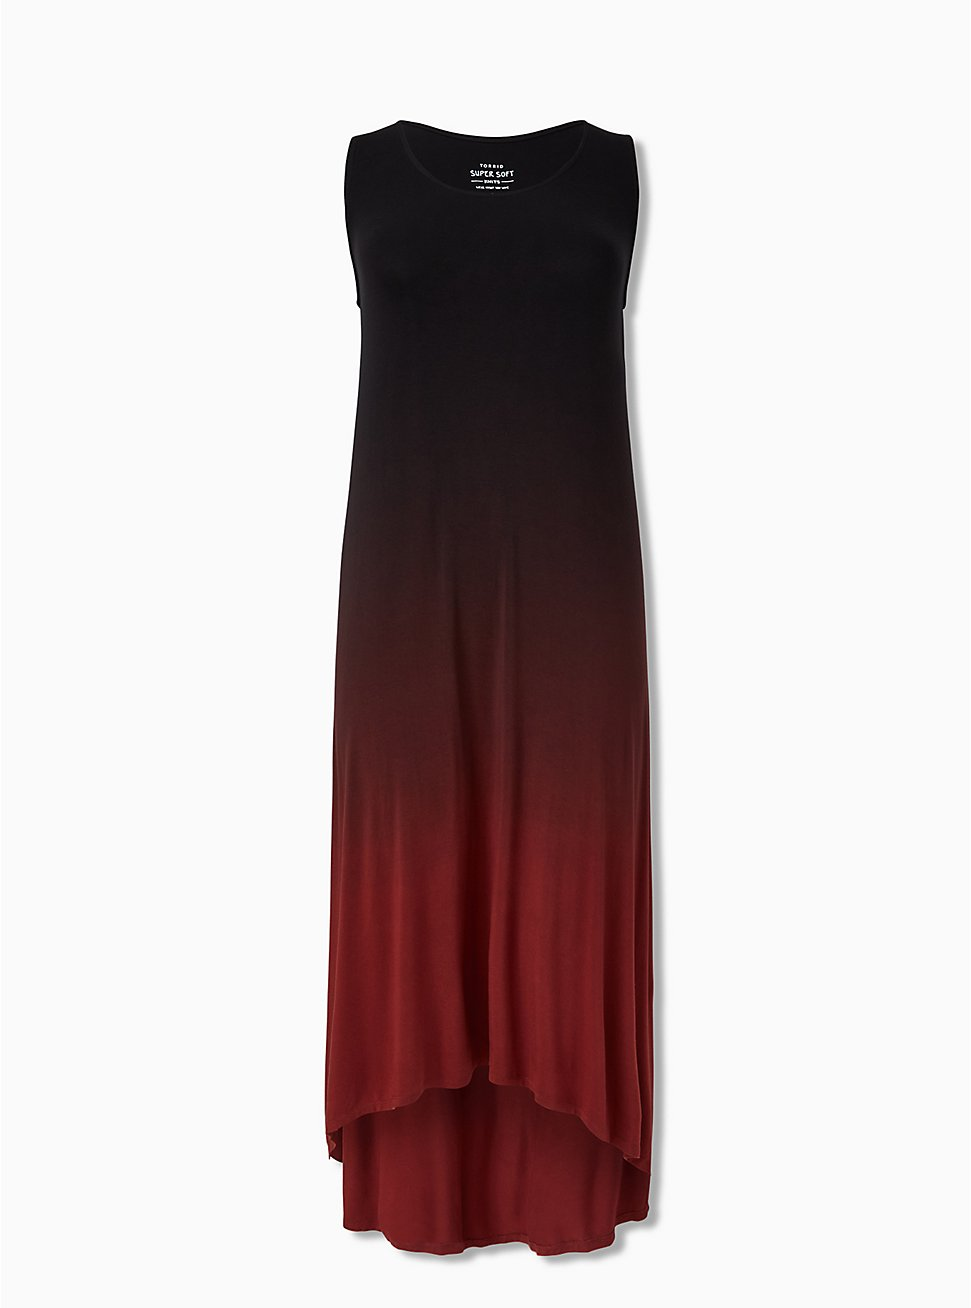 Super Soft Rust Red Dip Dye Hi-Lo Maxi Dress, MADDER BROWN, hi-res